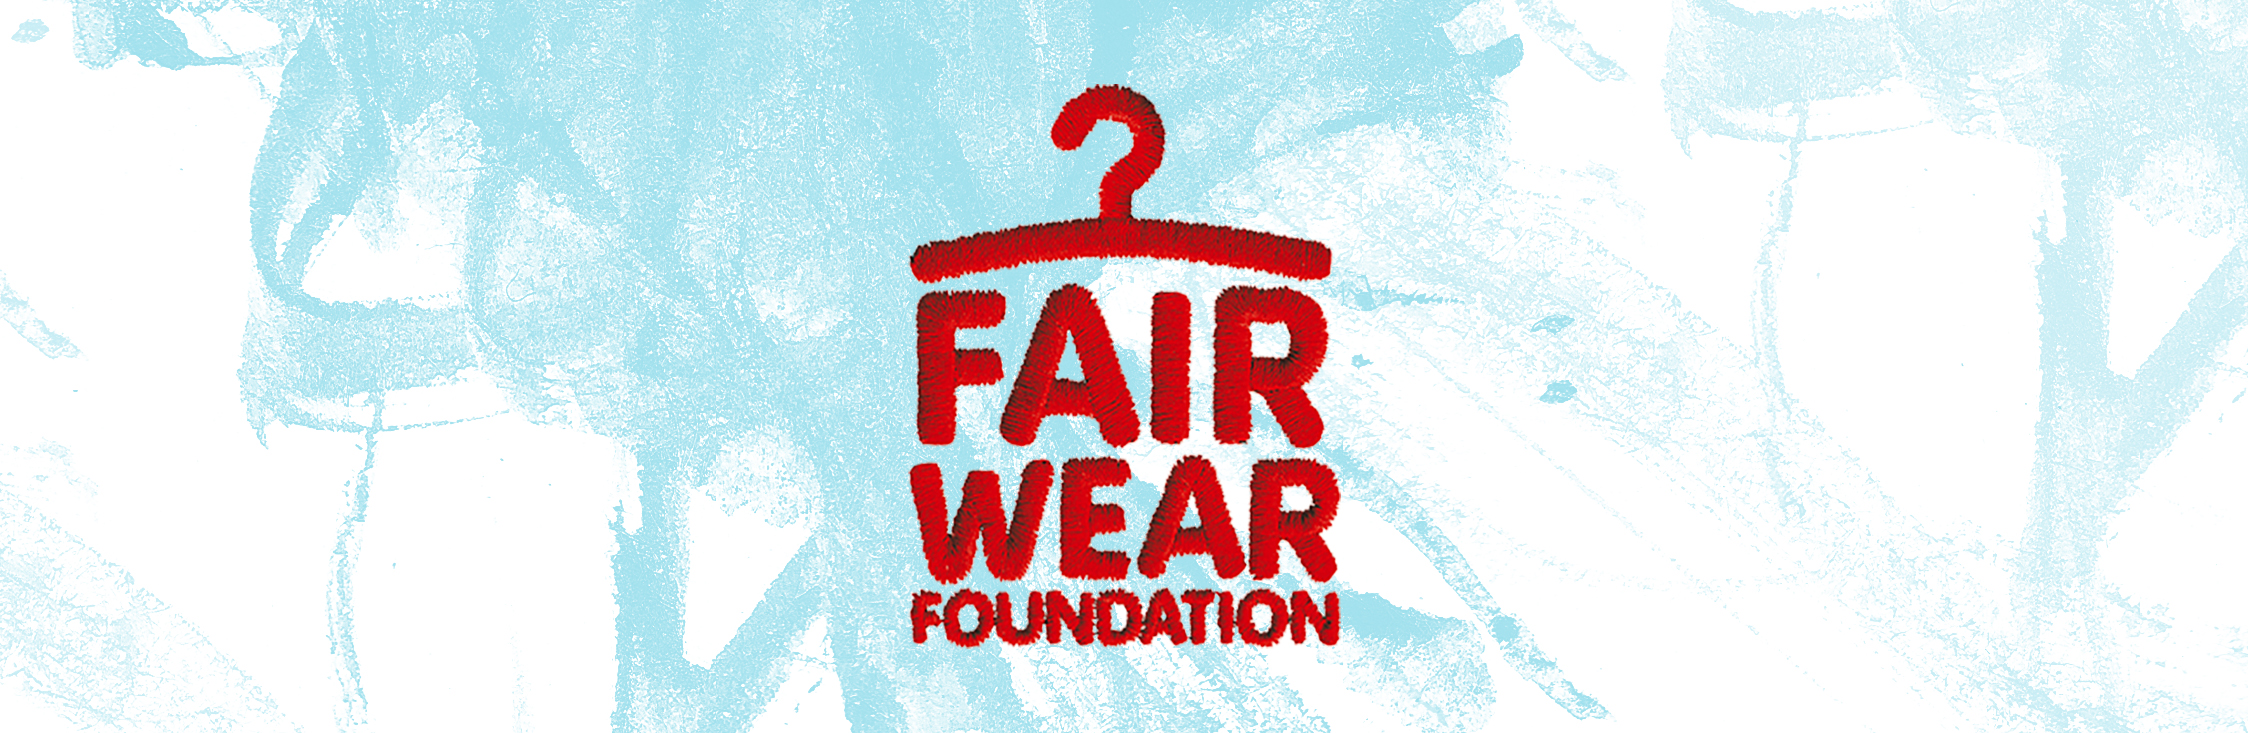 fairwearfoundationlogo-ethical-clothing-fair-uncaptive.jpg